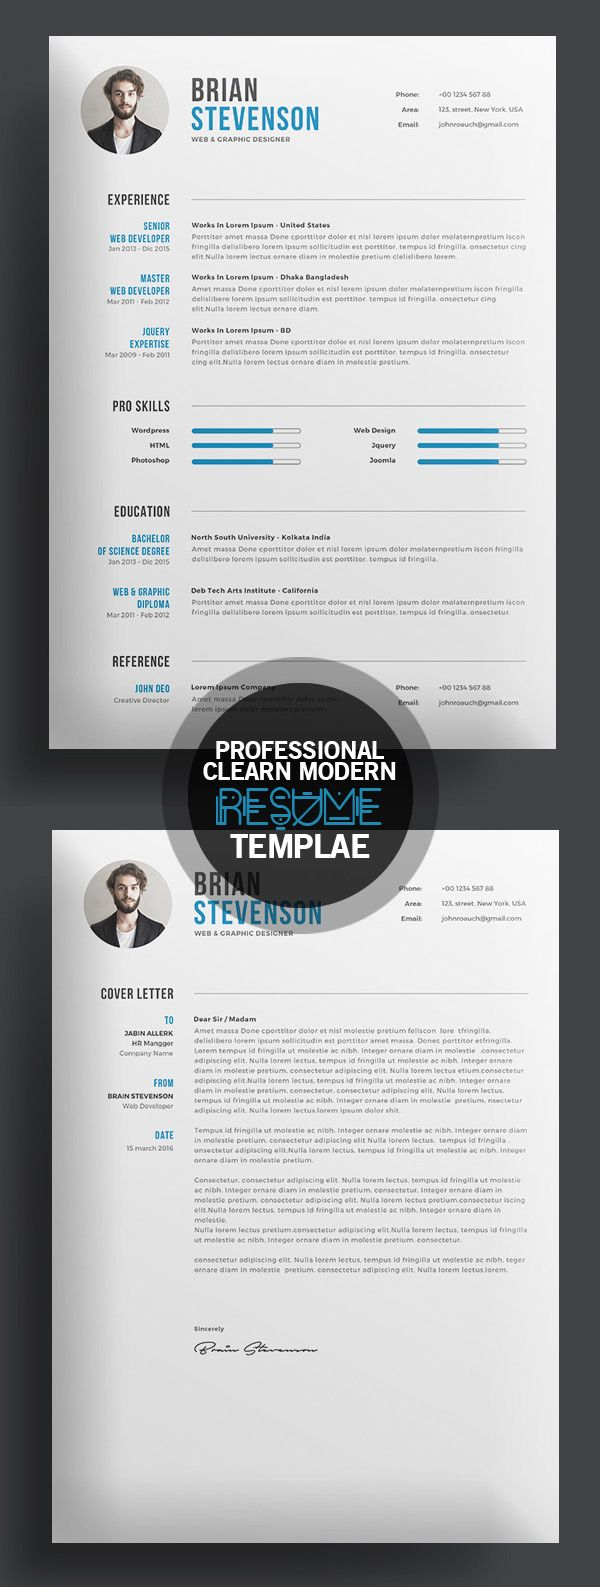 Best Modle De Cv Images On   Design Resume Resume